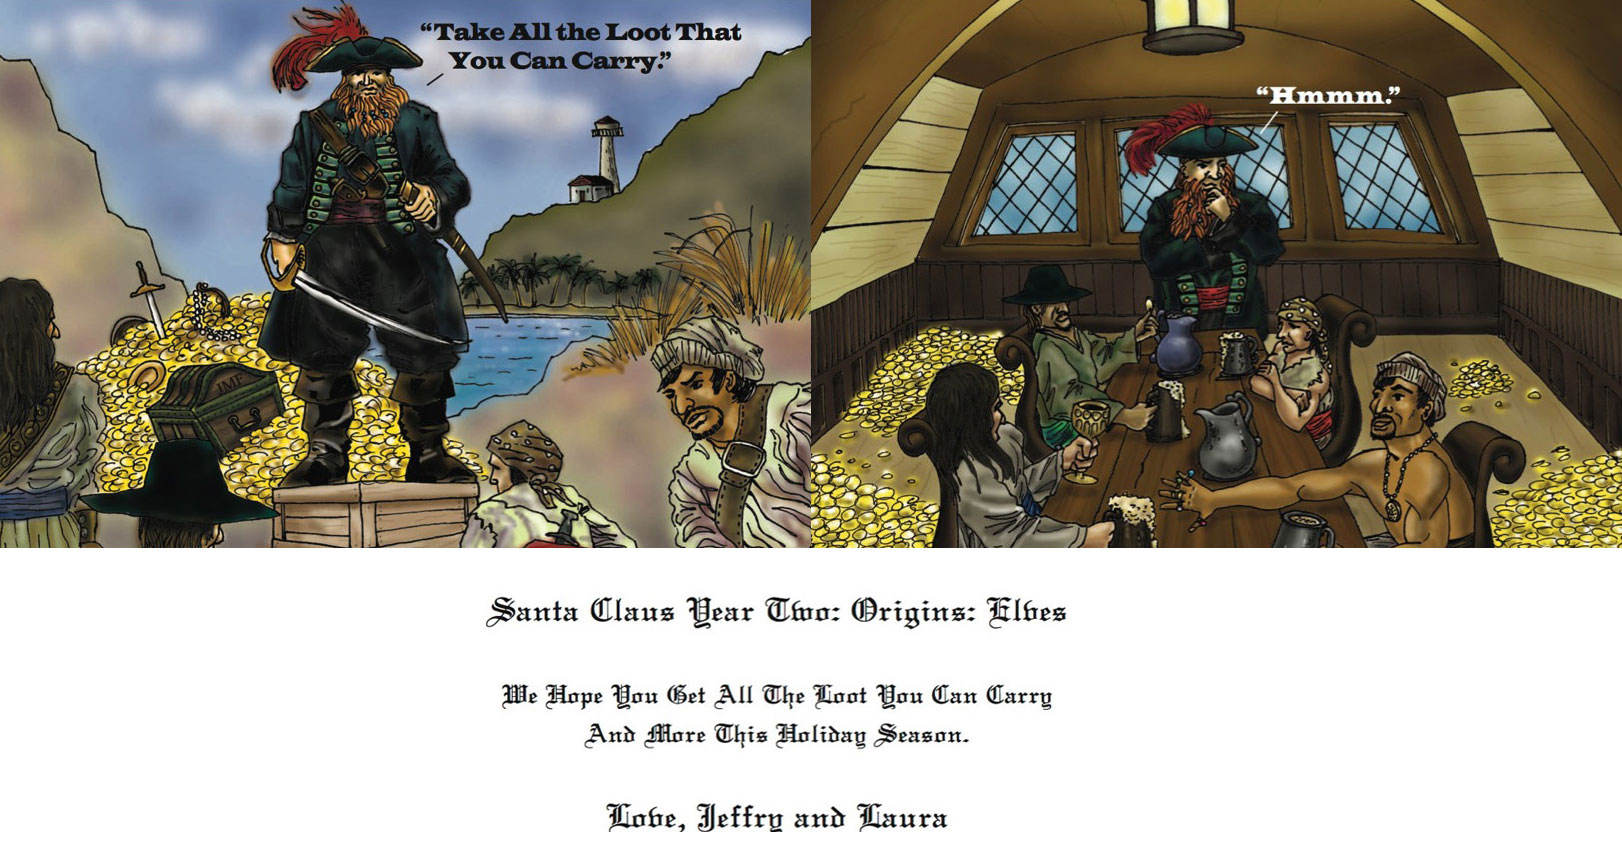 A story I created & wrote as a book, TV special and movie, began as a story I created for our annual holiday cards. This is the 2nd installment of the subtle and not-so-subtle 10-year exploration of how a lone pirate evolved into the grandfather of jolly, Santa Claus.